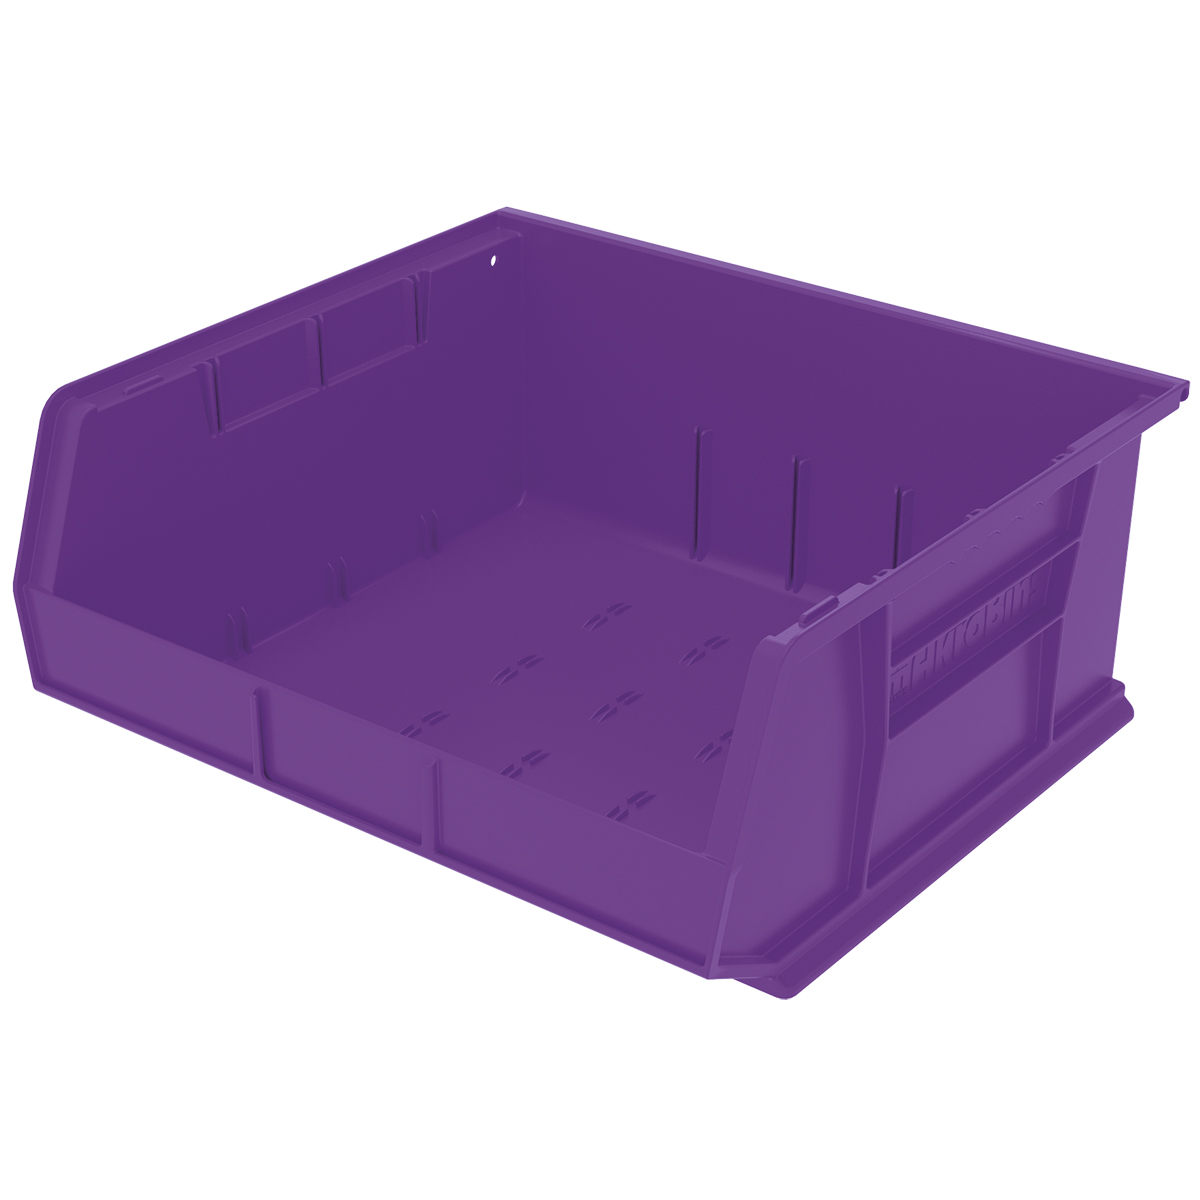 AkroBin 14-3/4 x 16-1/2 x 7, Purple (30250PURPL).  This item sold in carton quantities of 6.